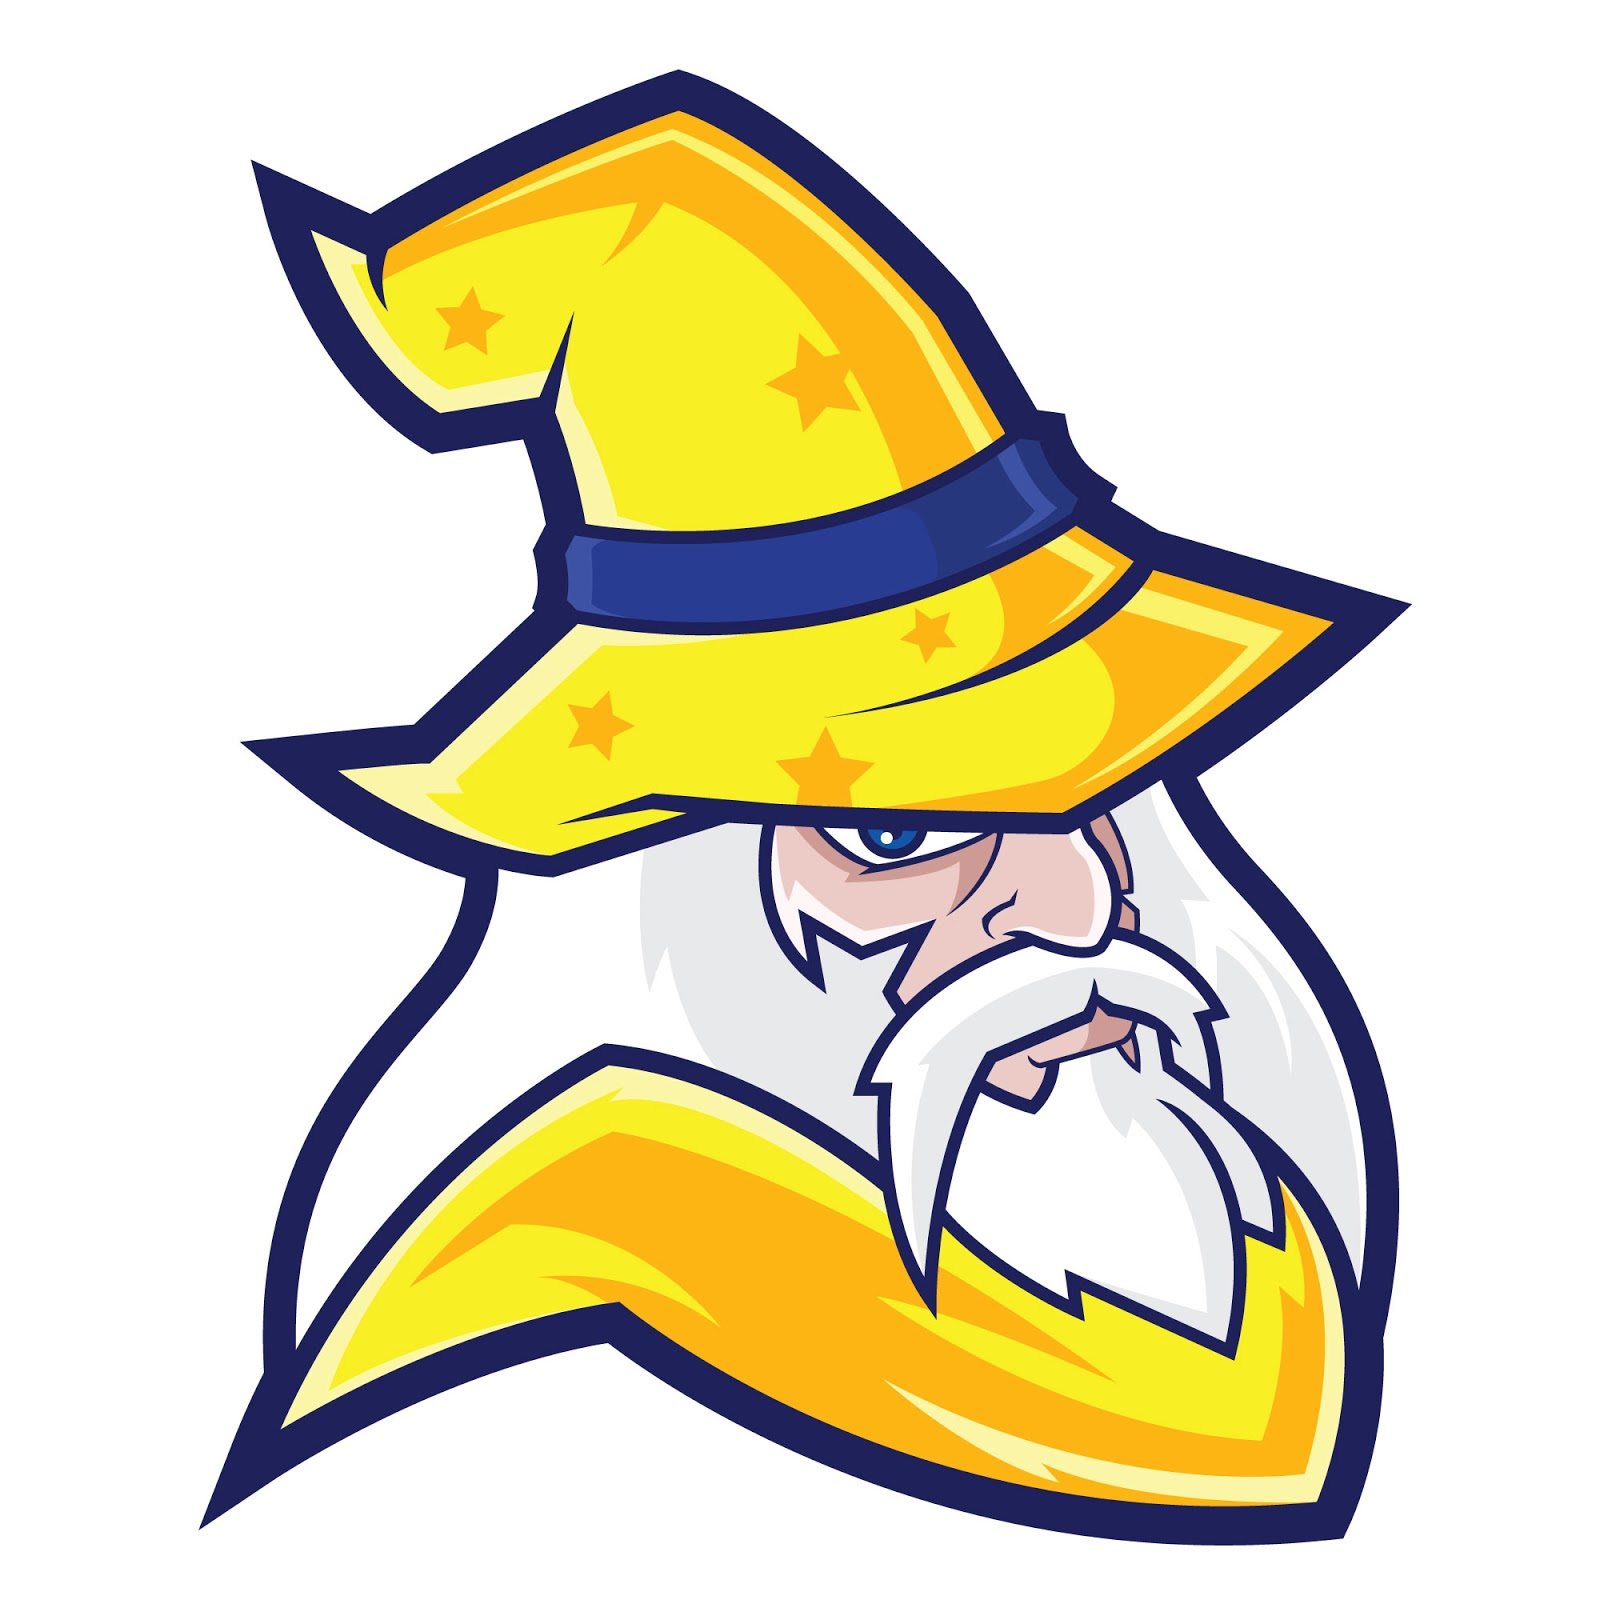 Wizard Logo Free Download Vector CDR, AI, EPS and PNG Formats